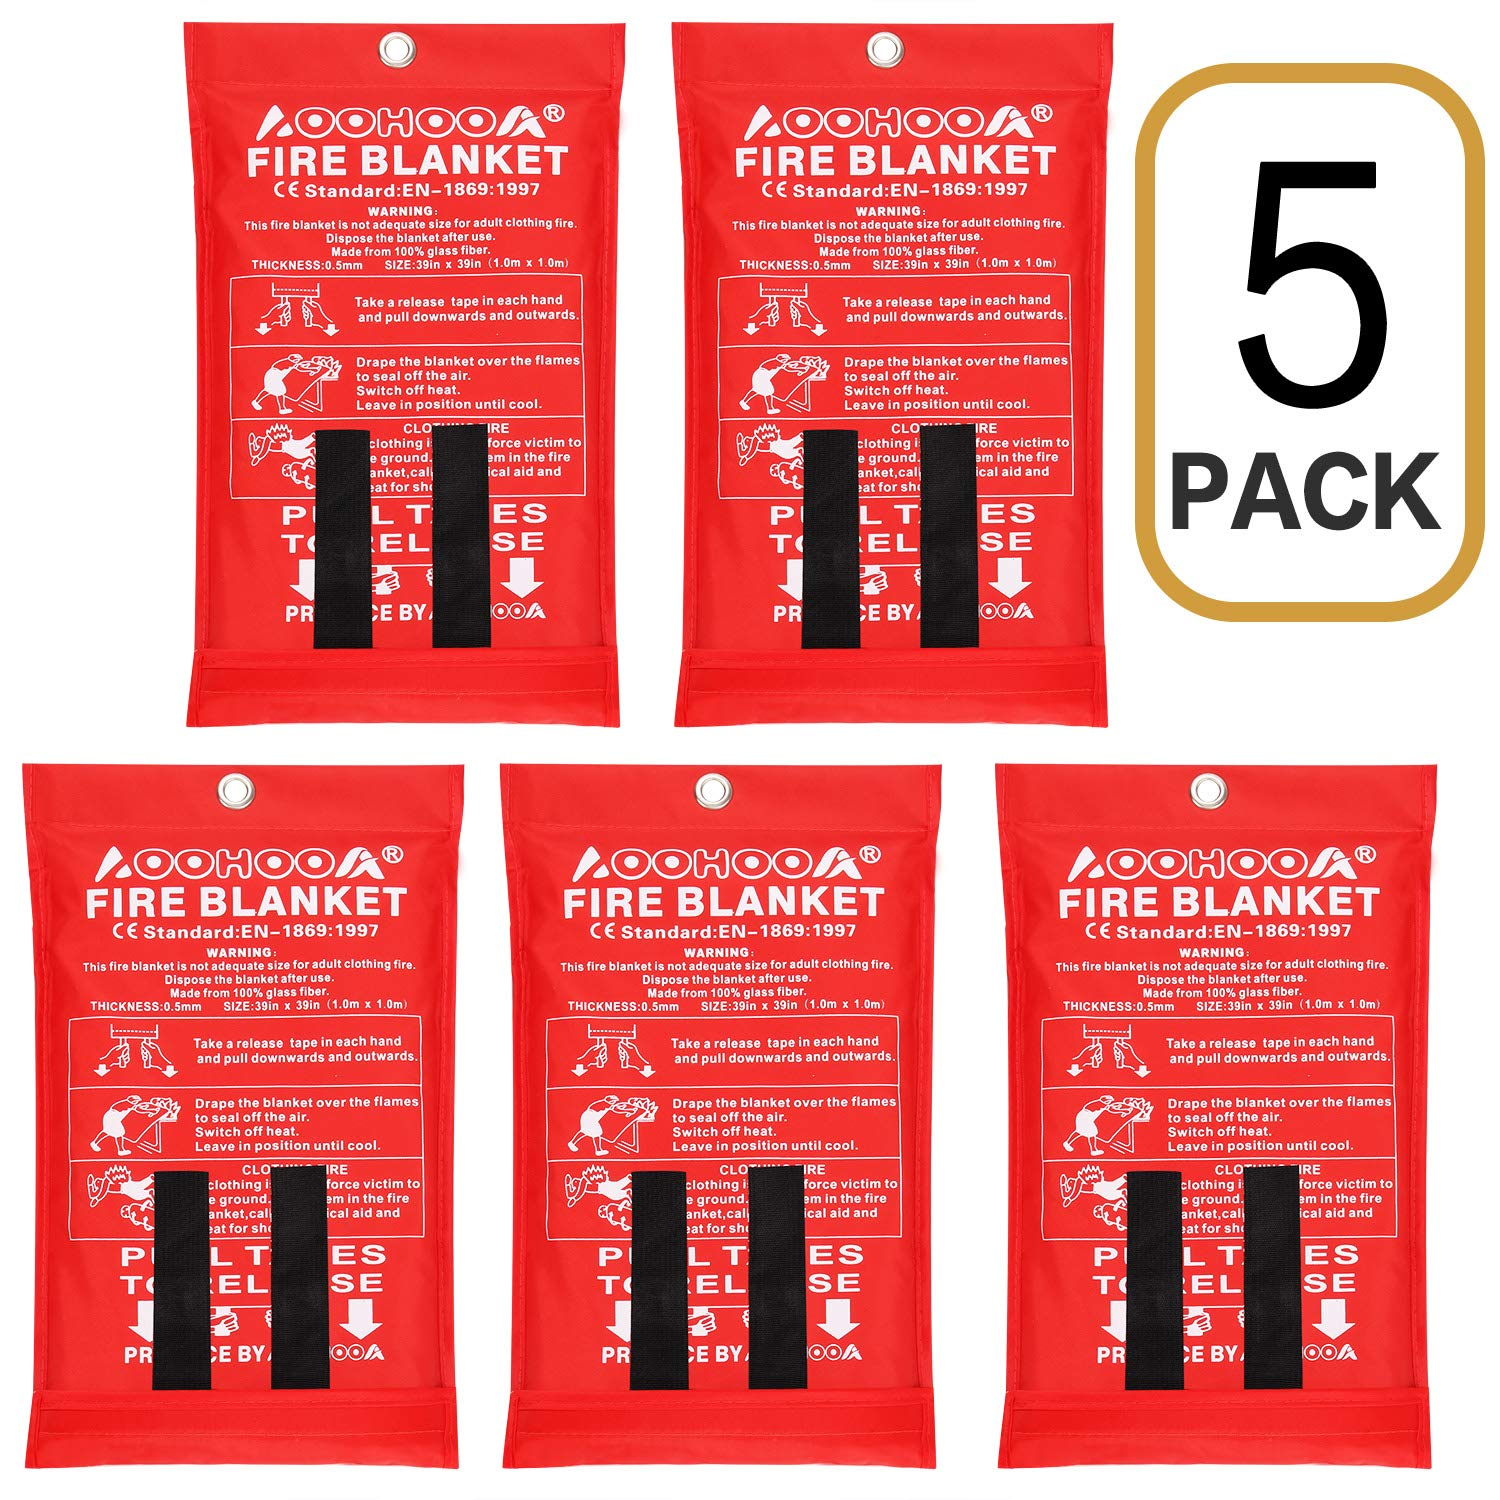 AOOHOOA Fiberglass Emergency Fire Blanket for Kitchen,Camping,Fireplace,Grill,Car,RV,Boat and so on